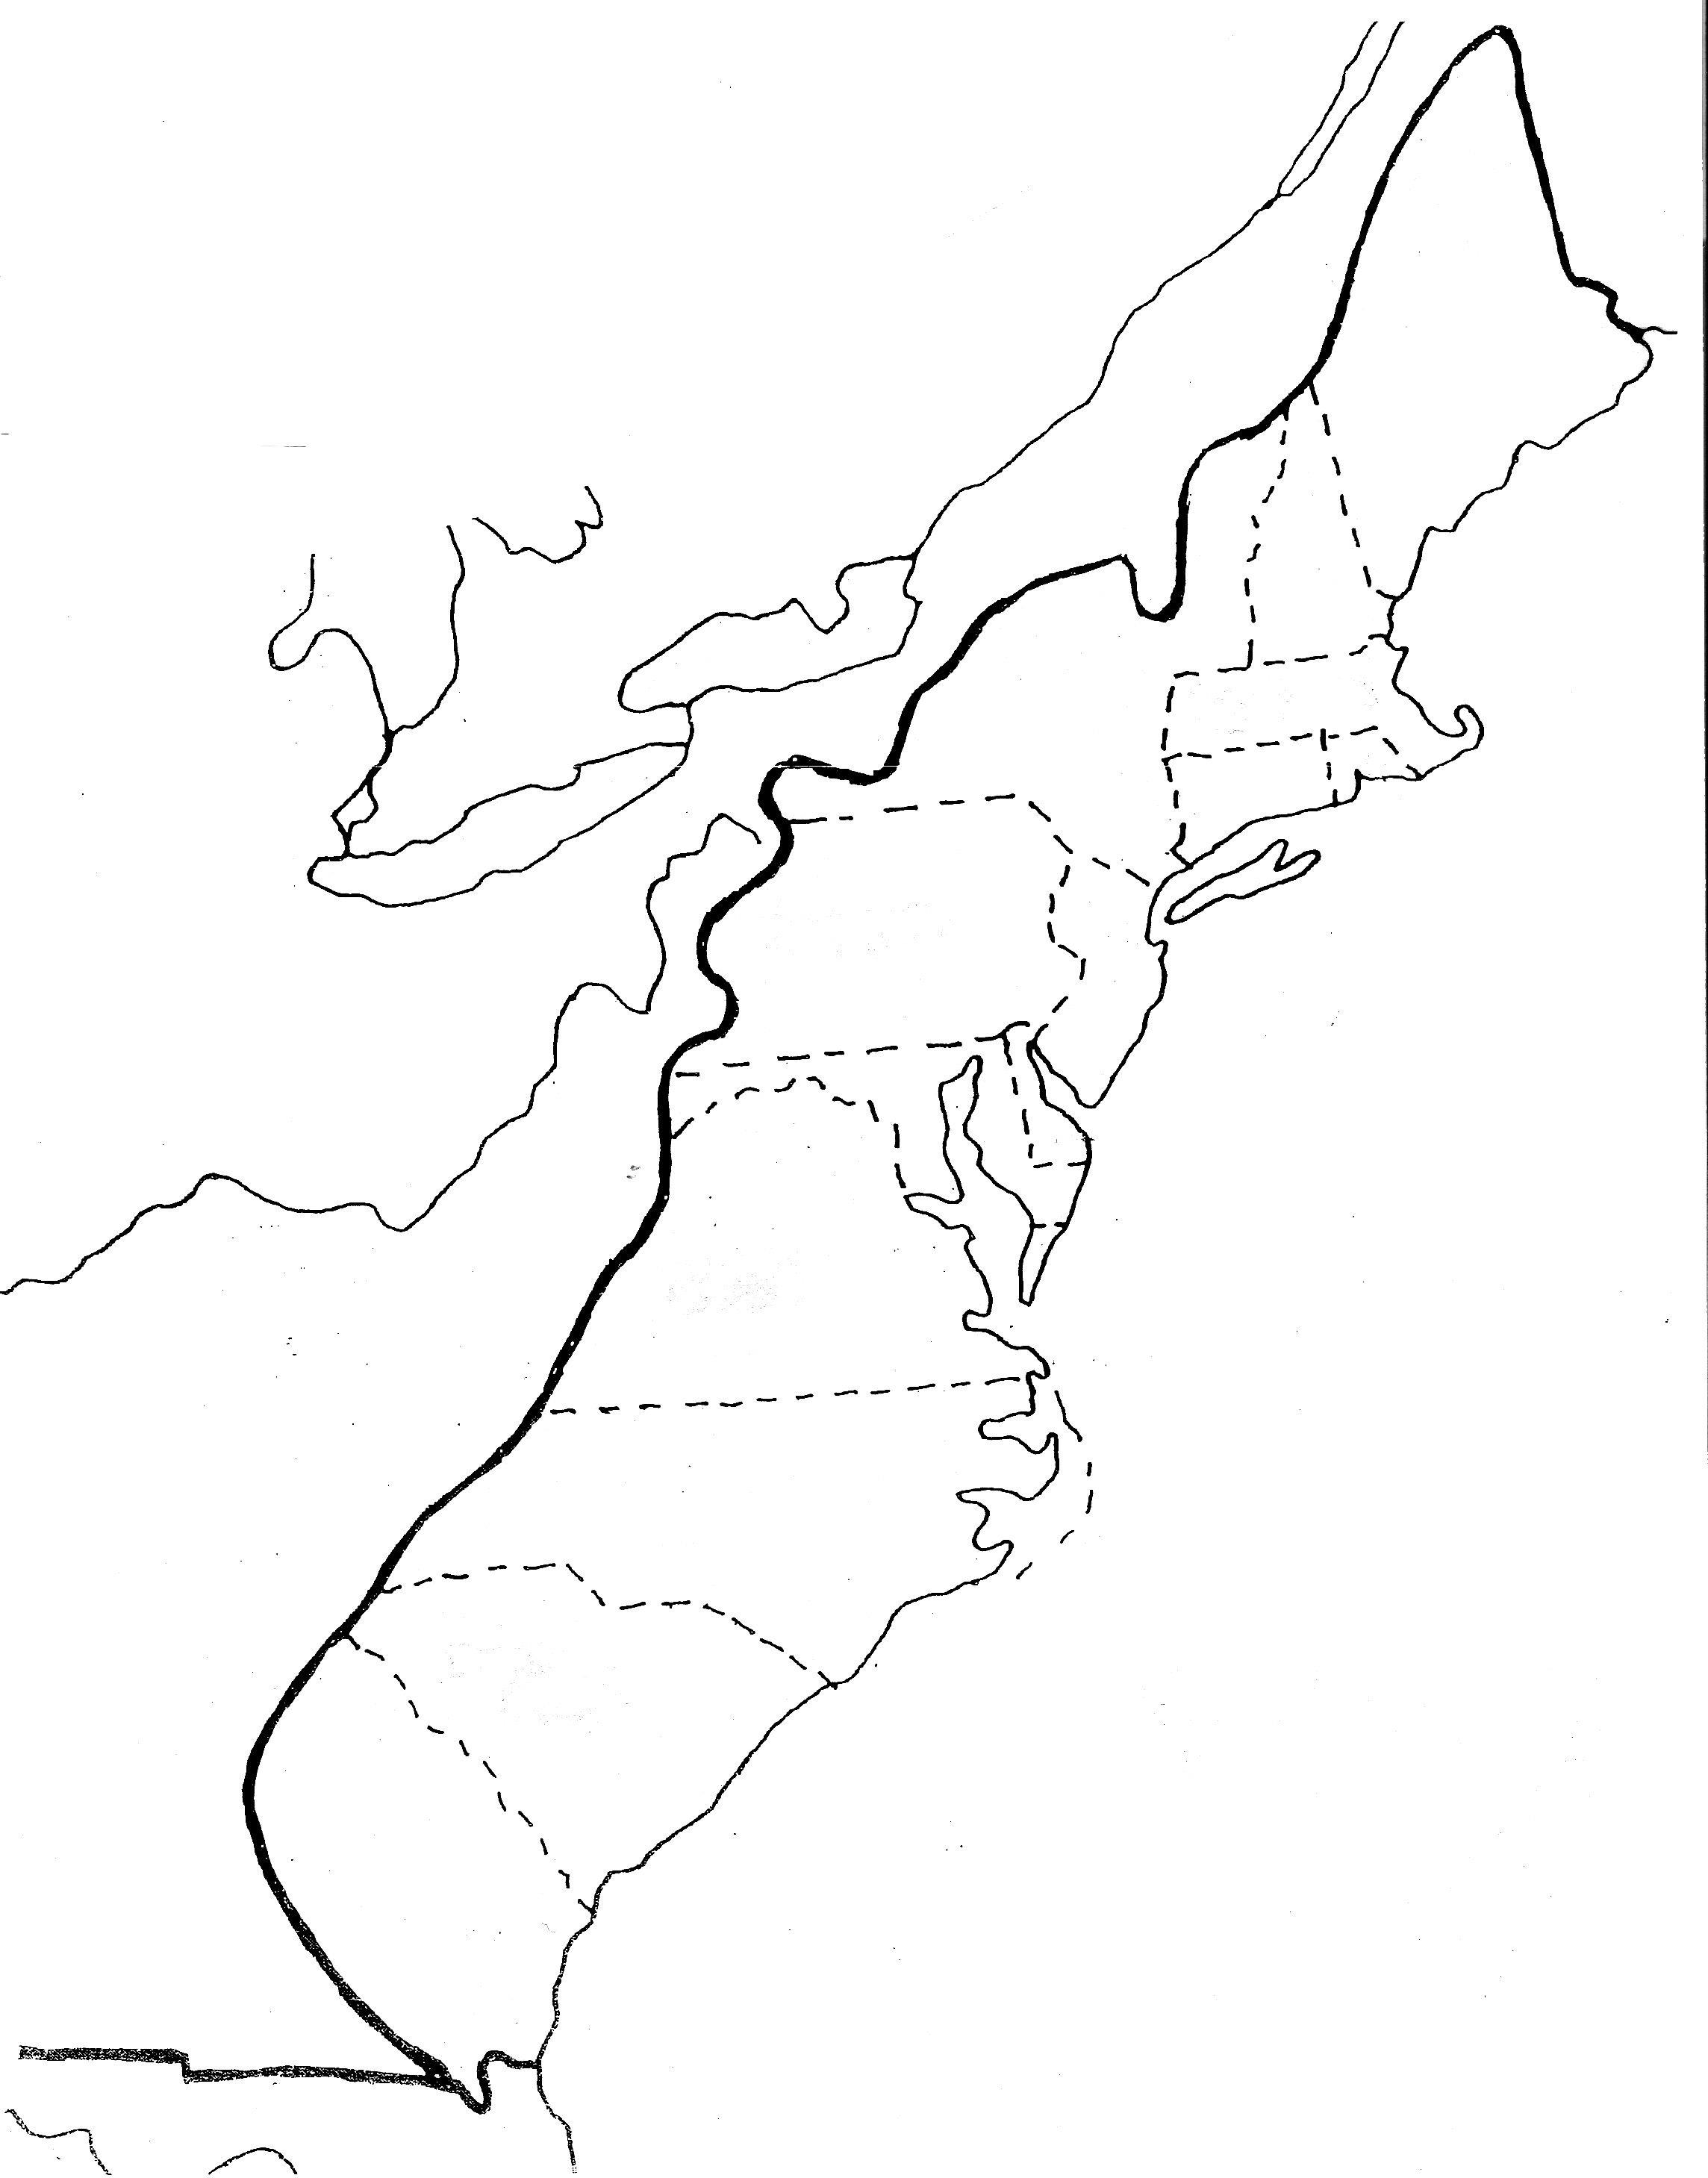 Original 13 Colonies Map Quiz